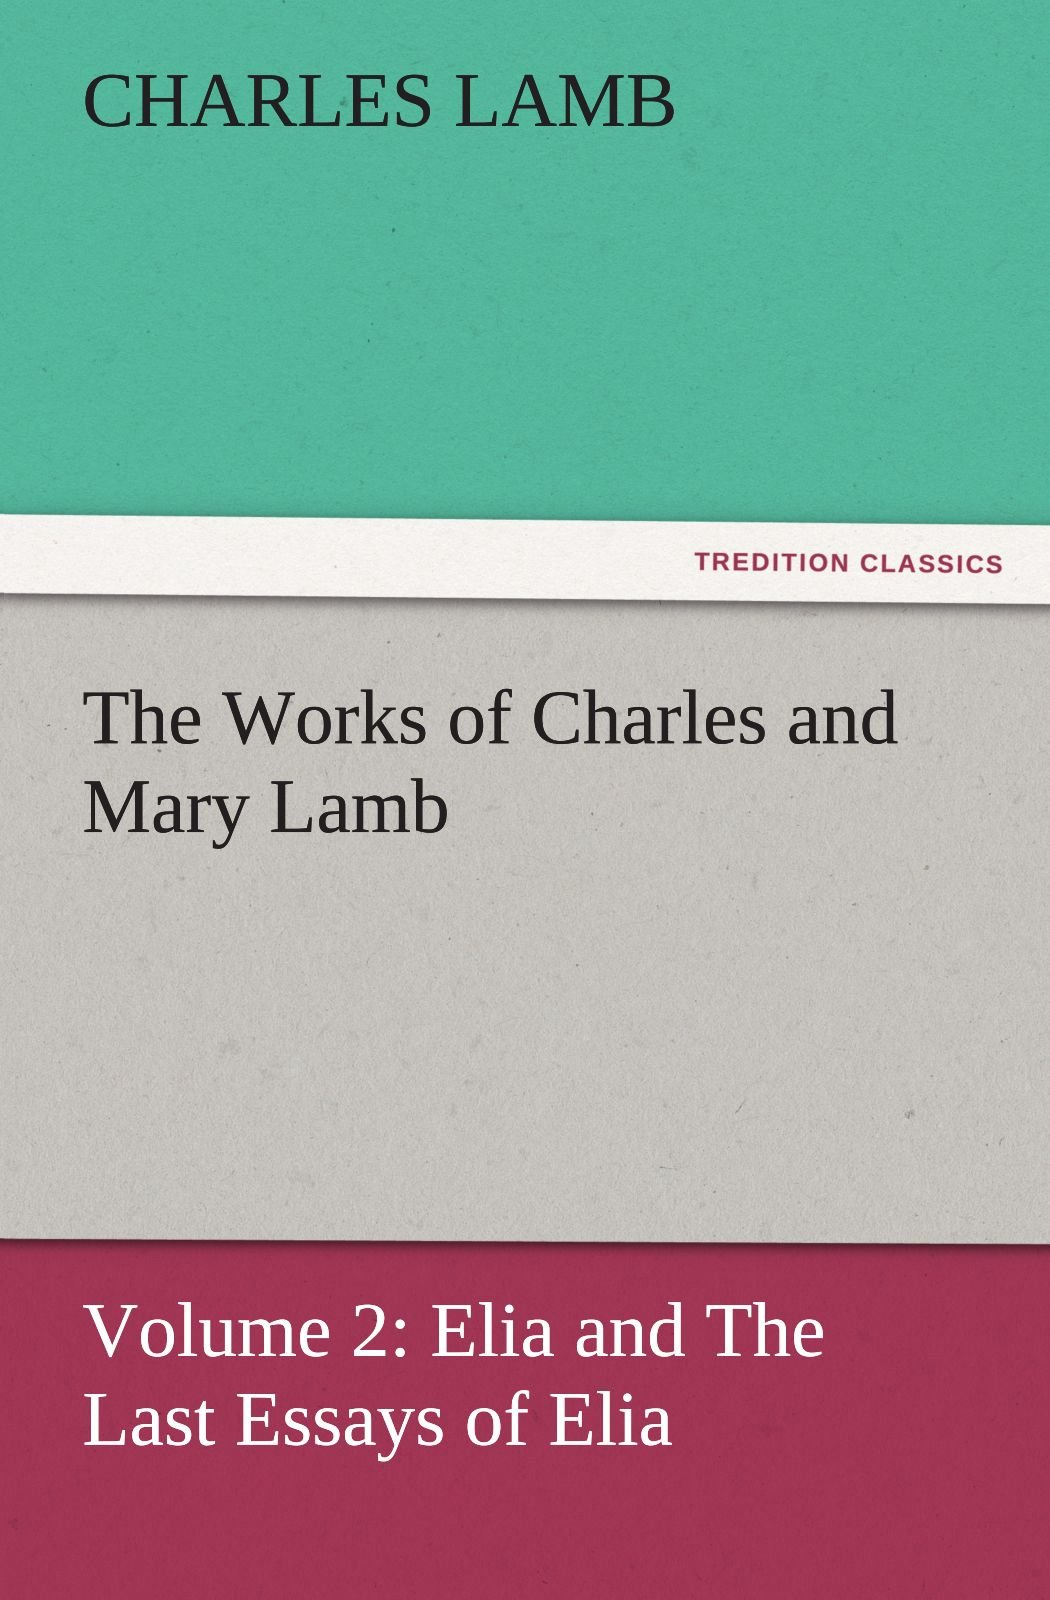 Download The Works of Charles and Mary Lamb: Volume 2: Elia and The Last Essays of Elia (TREDITION CLASSICS) ebook